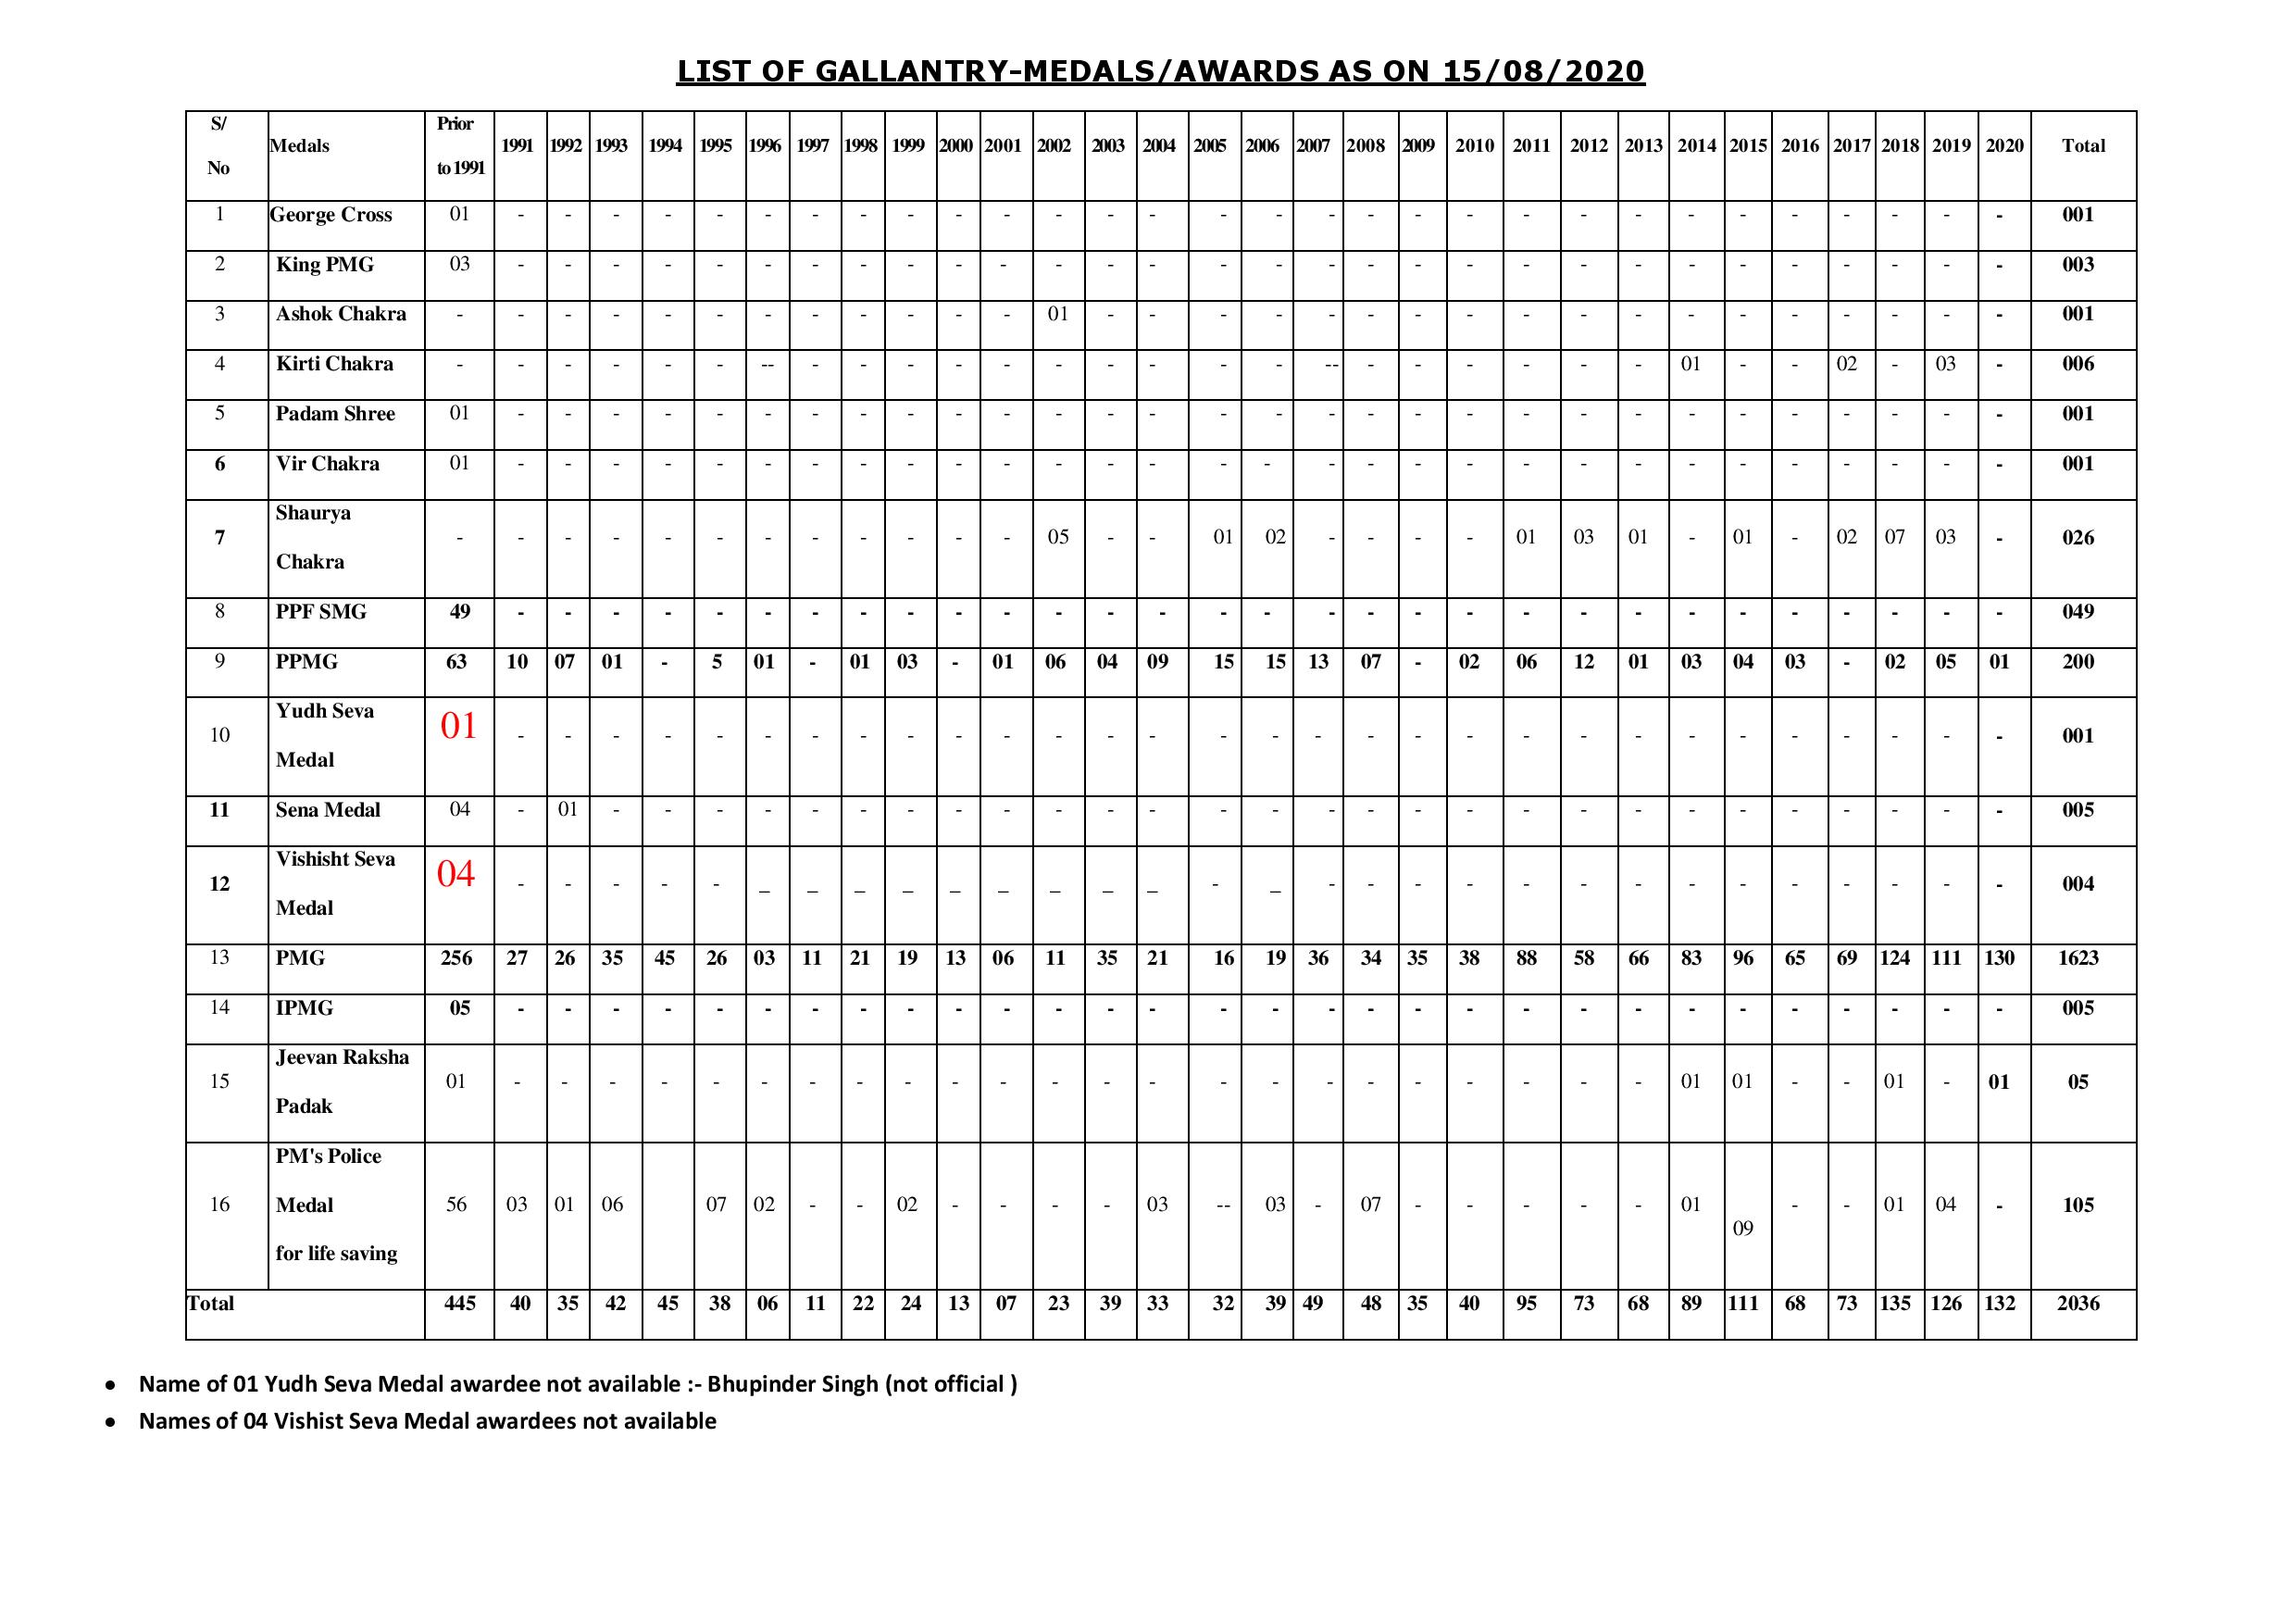 List of Gallantry - Medals / Awards as on 15/08/2020